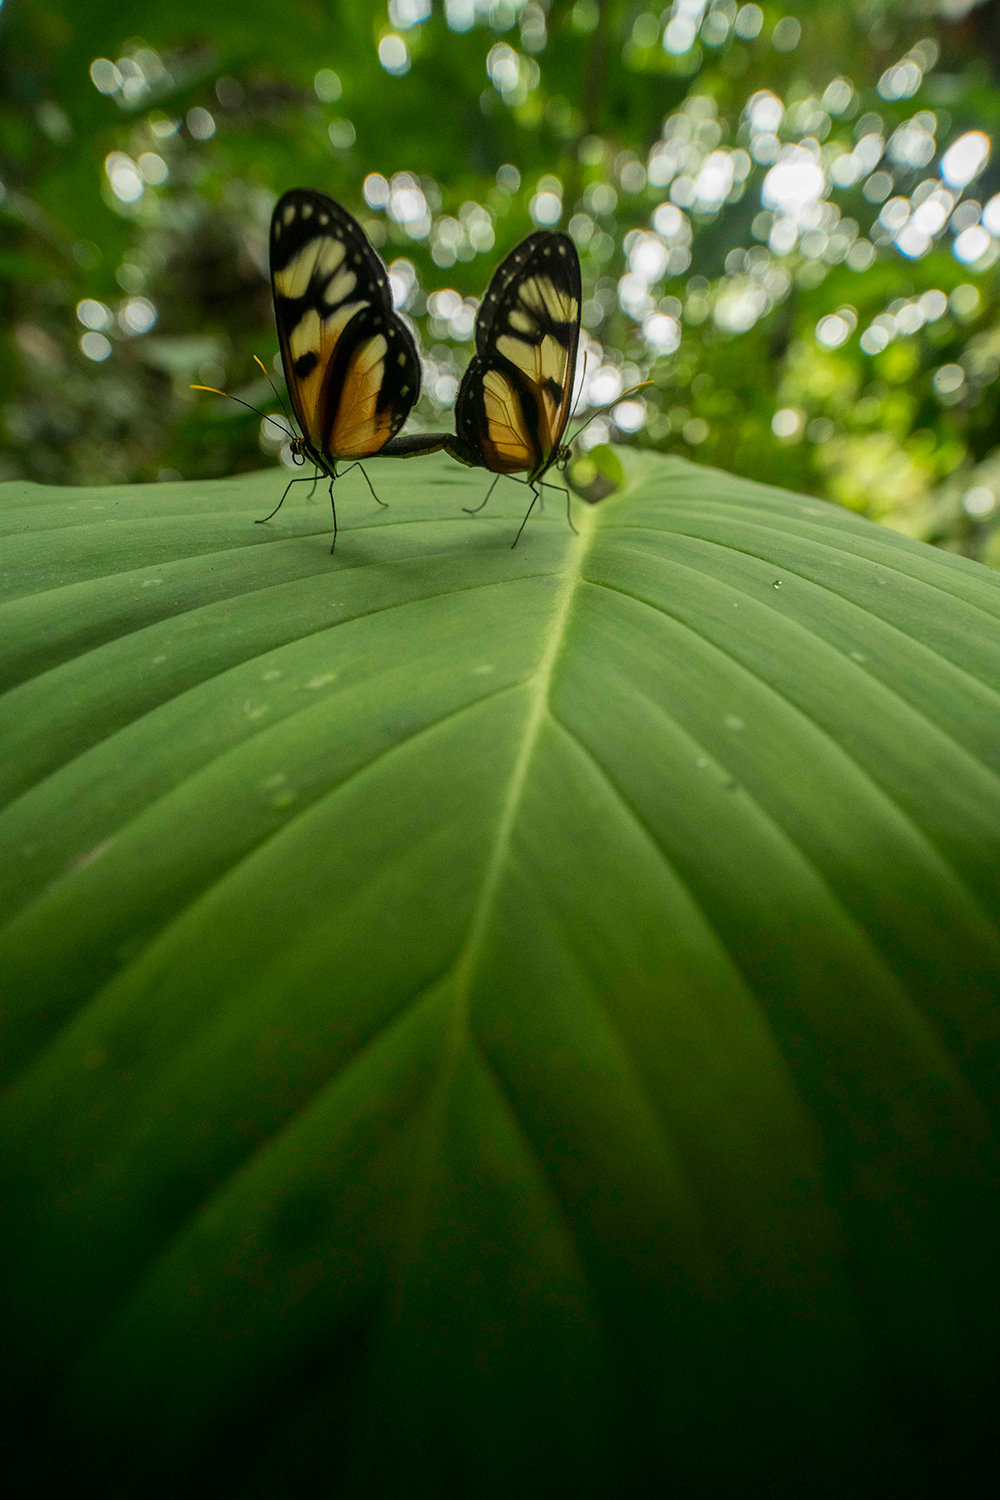 A pair of butterflies mate on a large leaf